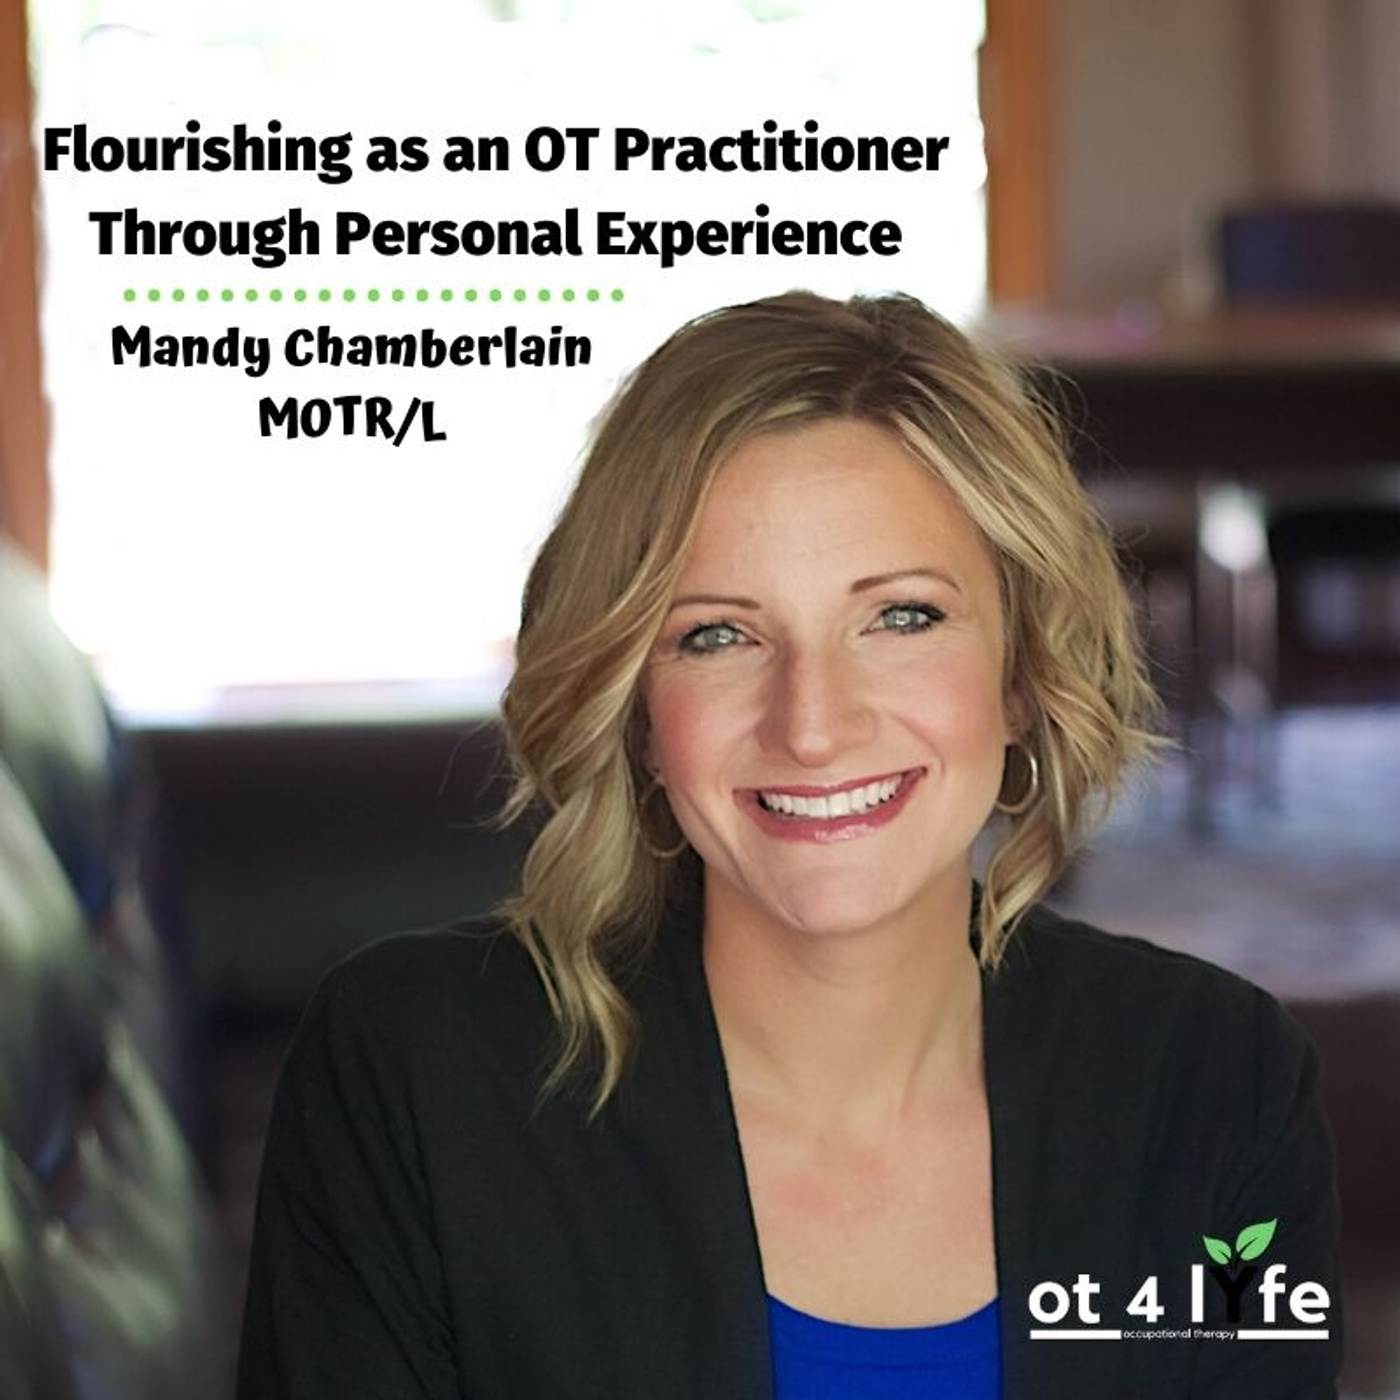 Flourishing as an OT Practitioner Through Personal Experience with Mandy Chamberlain